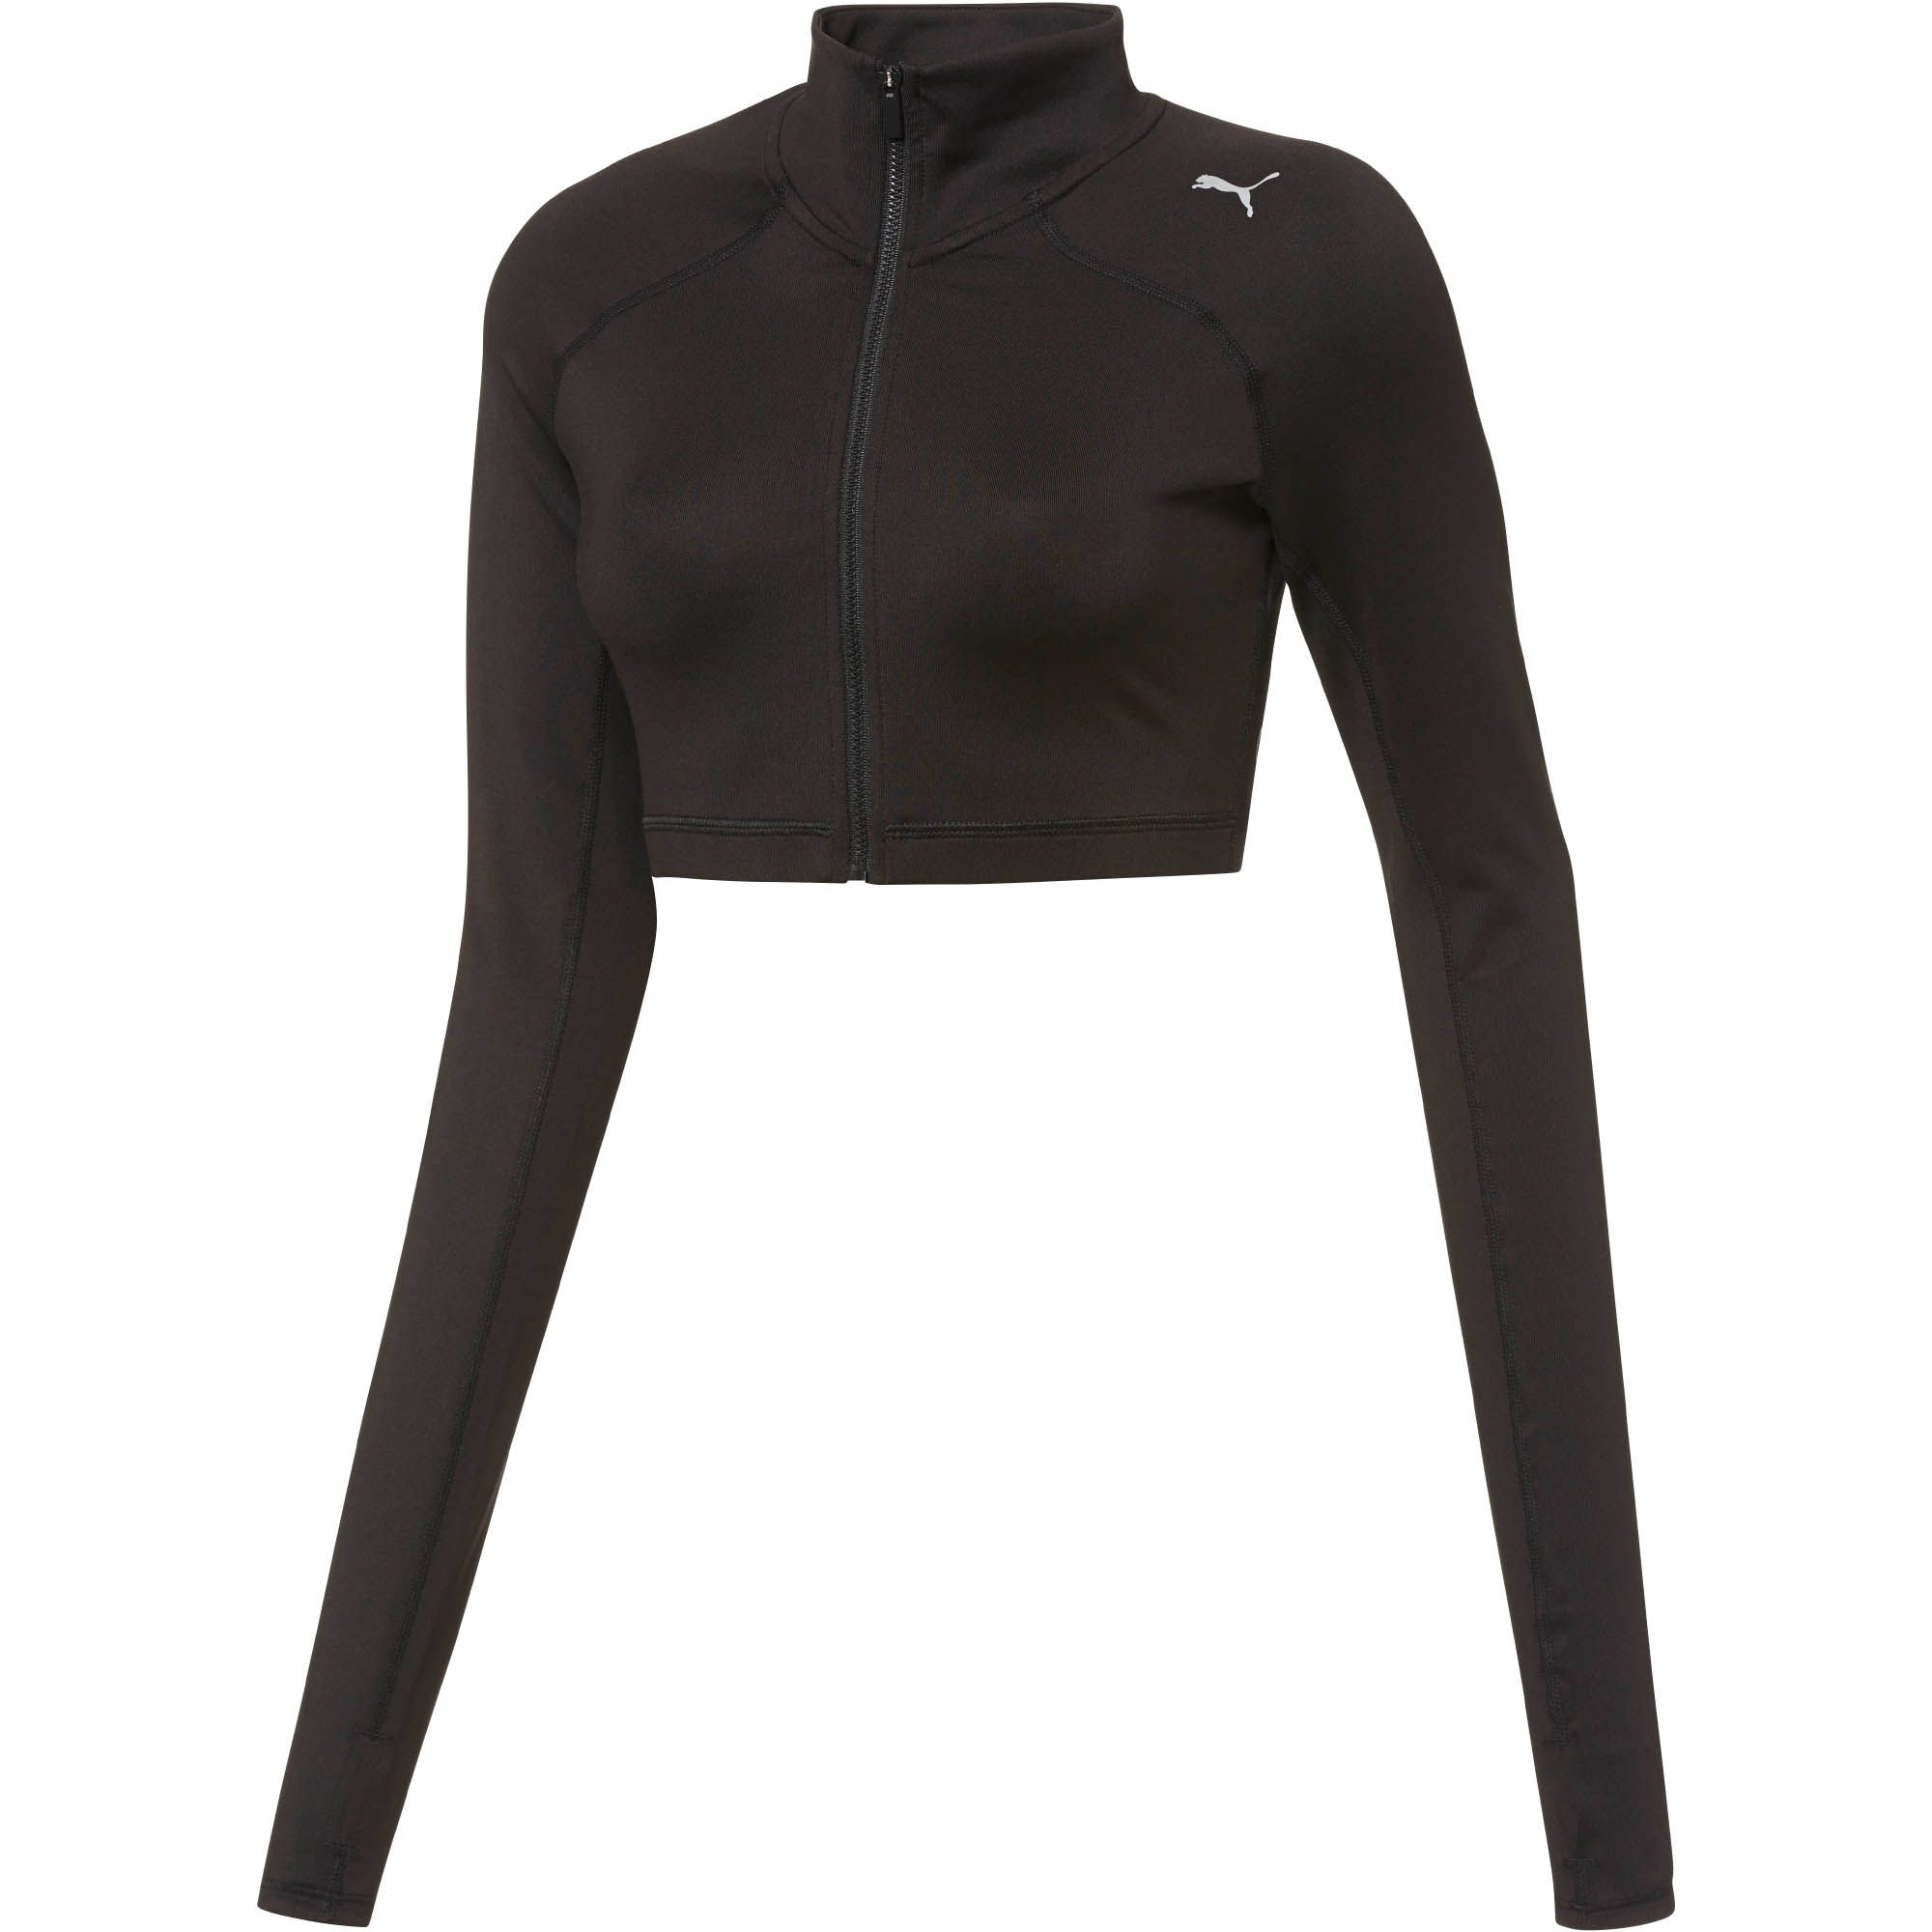 633e2d2a278 PUMA All Eyes On Me Long Sleeve Crop Top in Black - Lyst